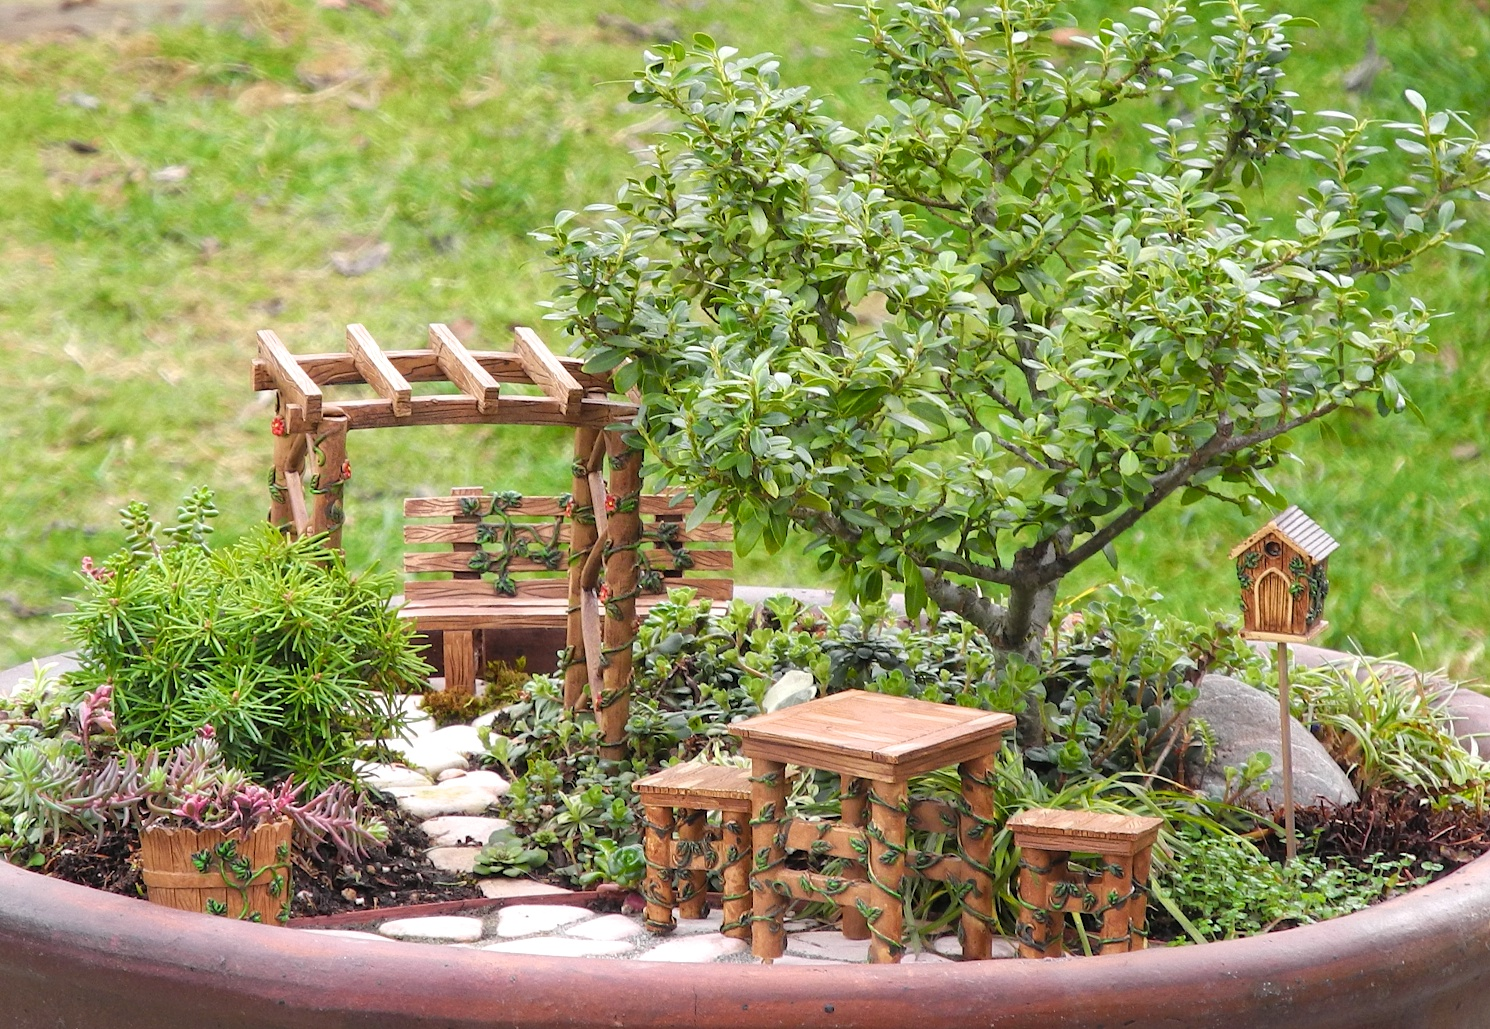 gazebo and bench, table and two stools, bucket and bird house, all made from wood-like material, in a large pot, containing pebbles and plants, and a green bonsai tree